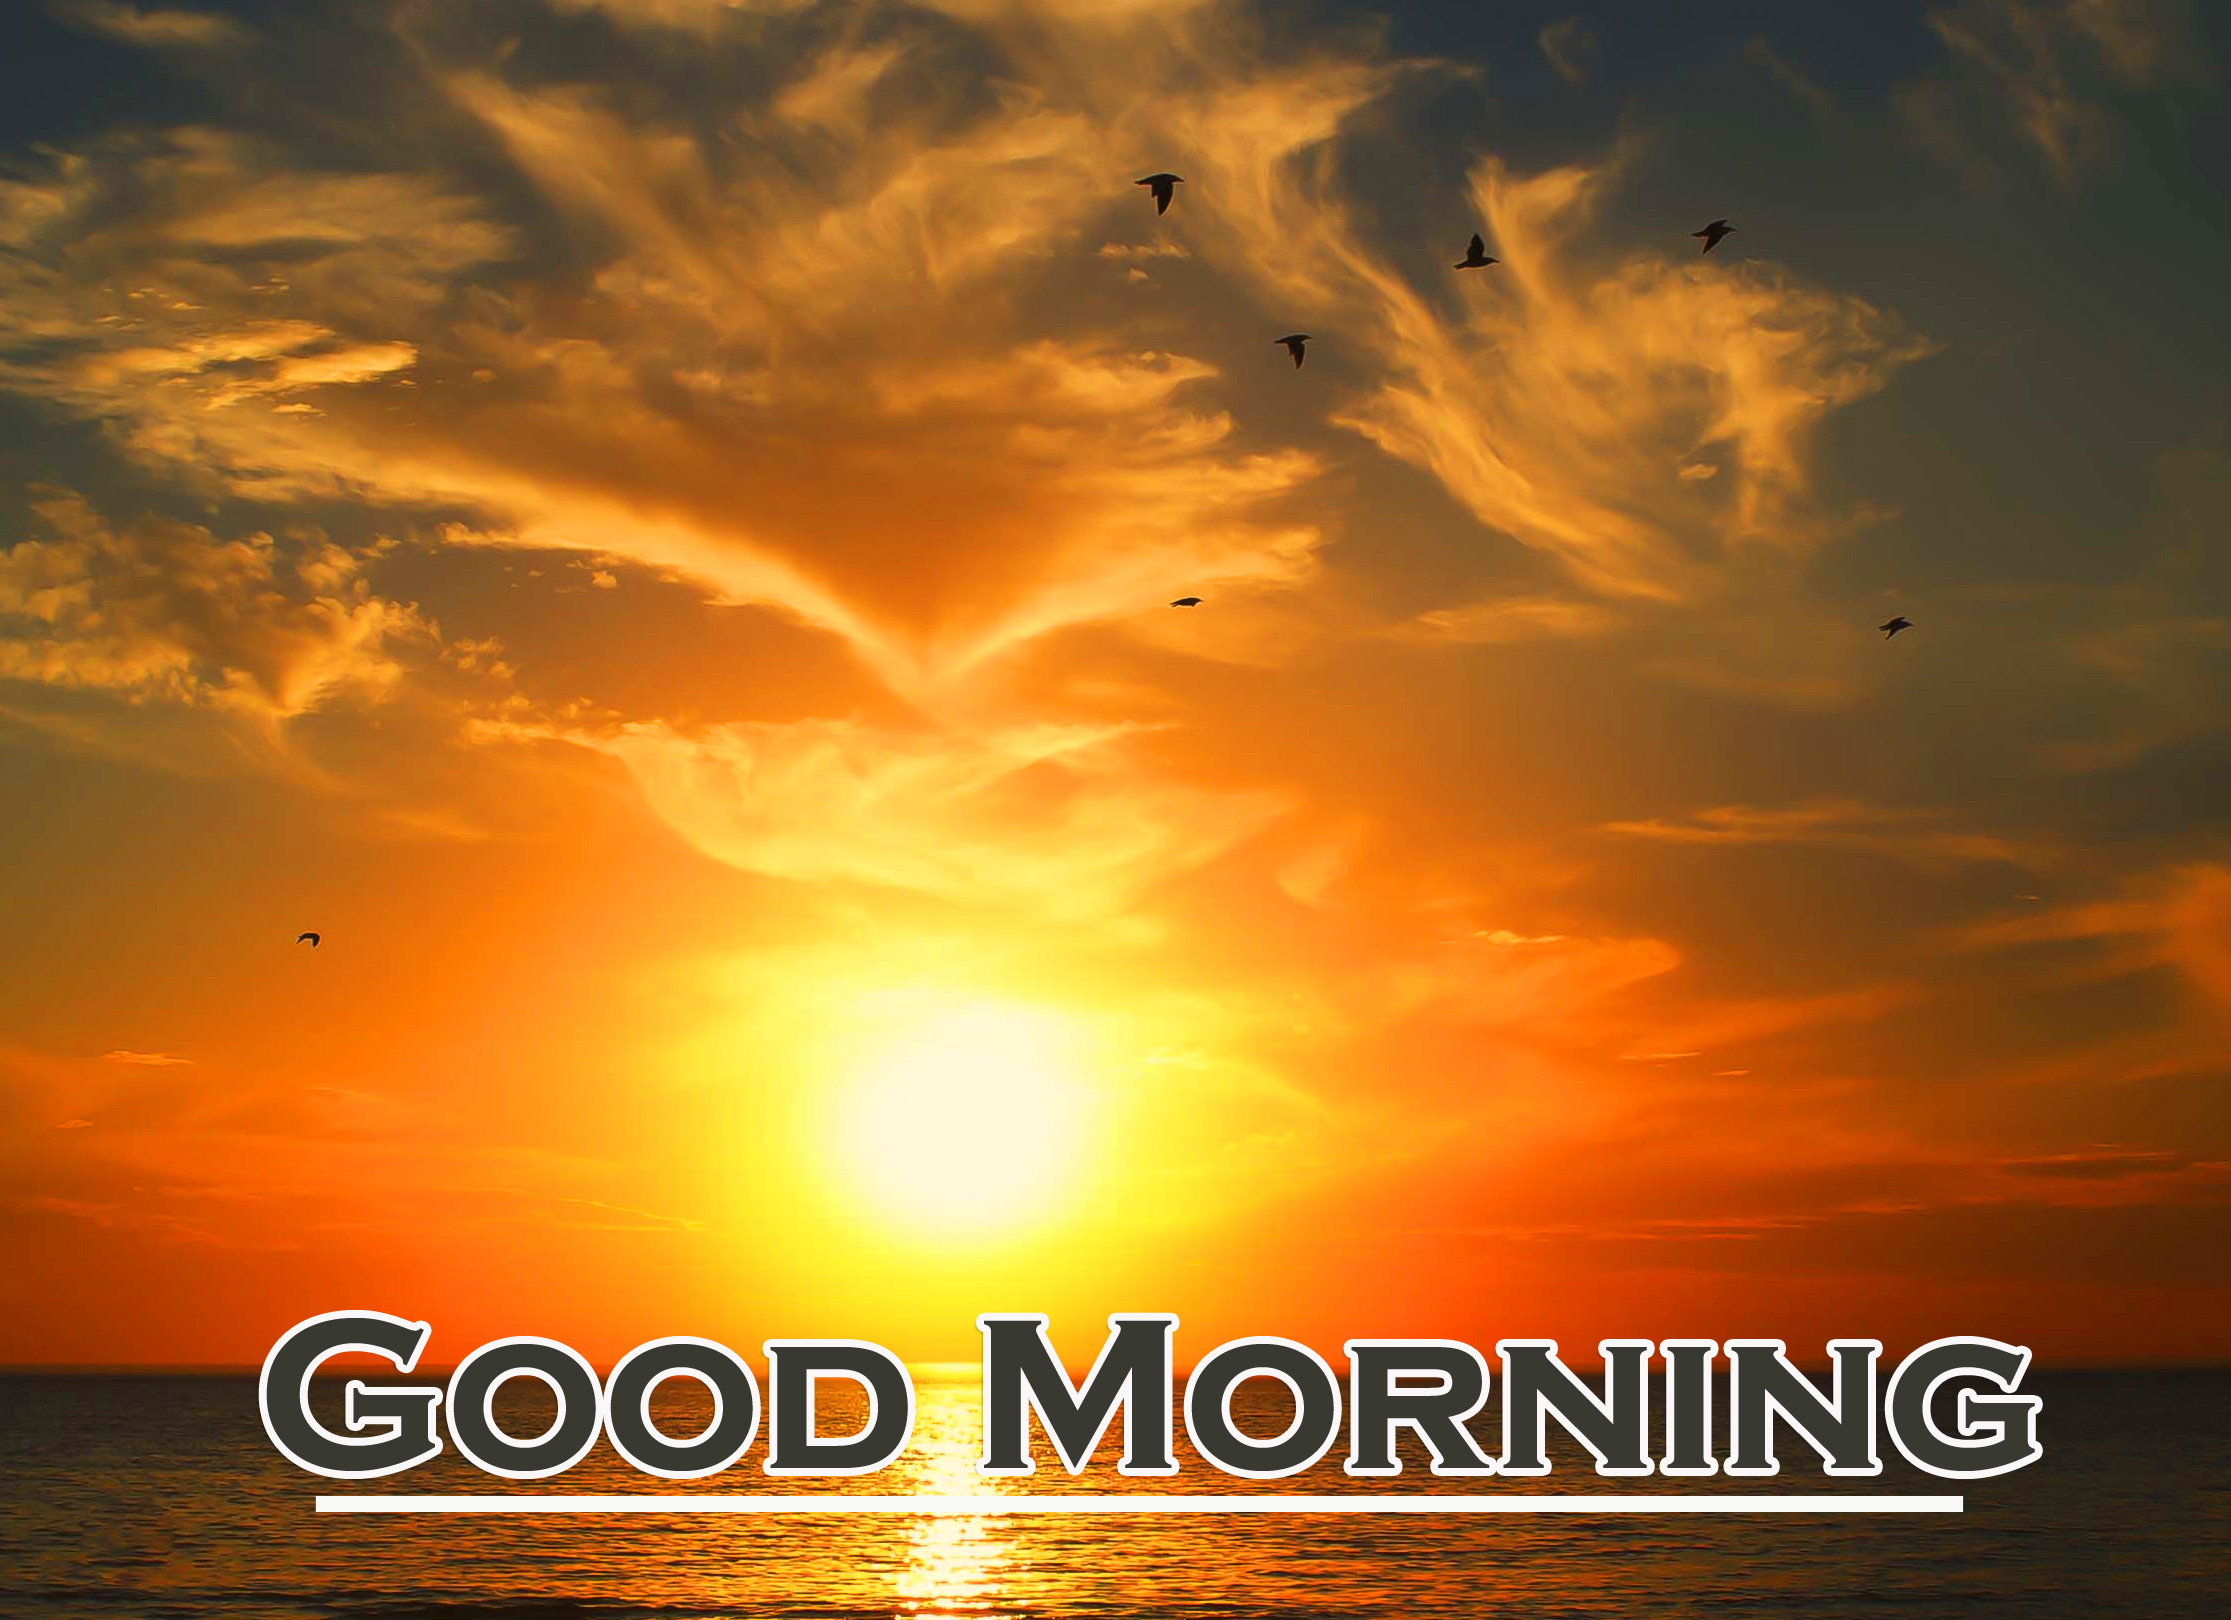 Sunrise FREE Good Morning Wallpaper Pics DOWNLOAD